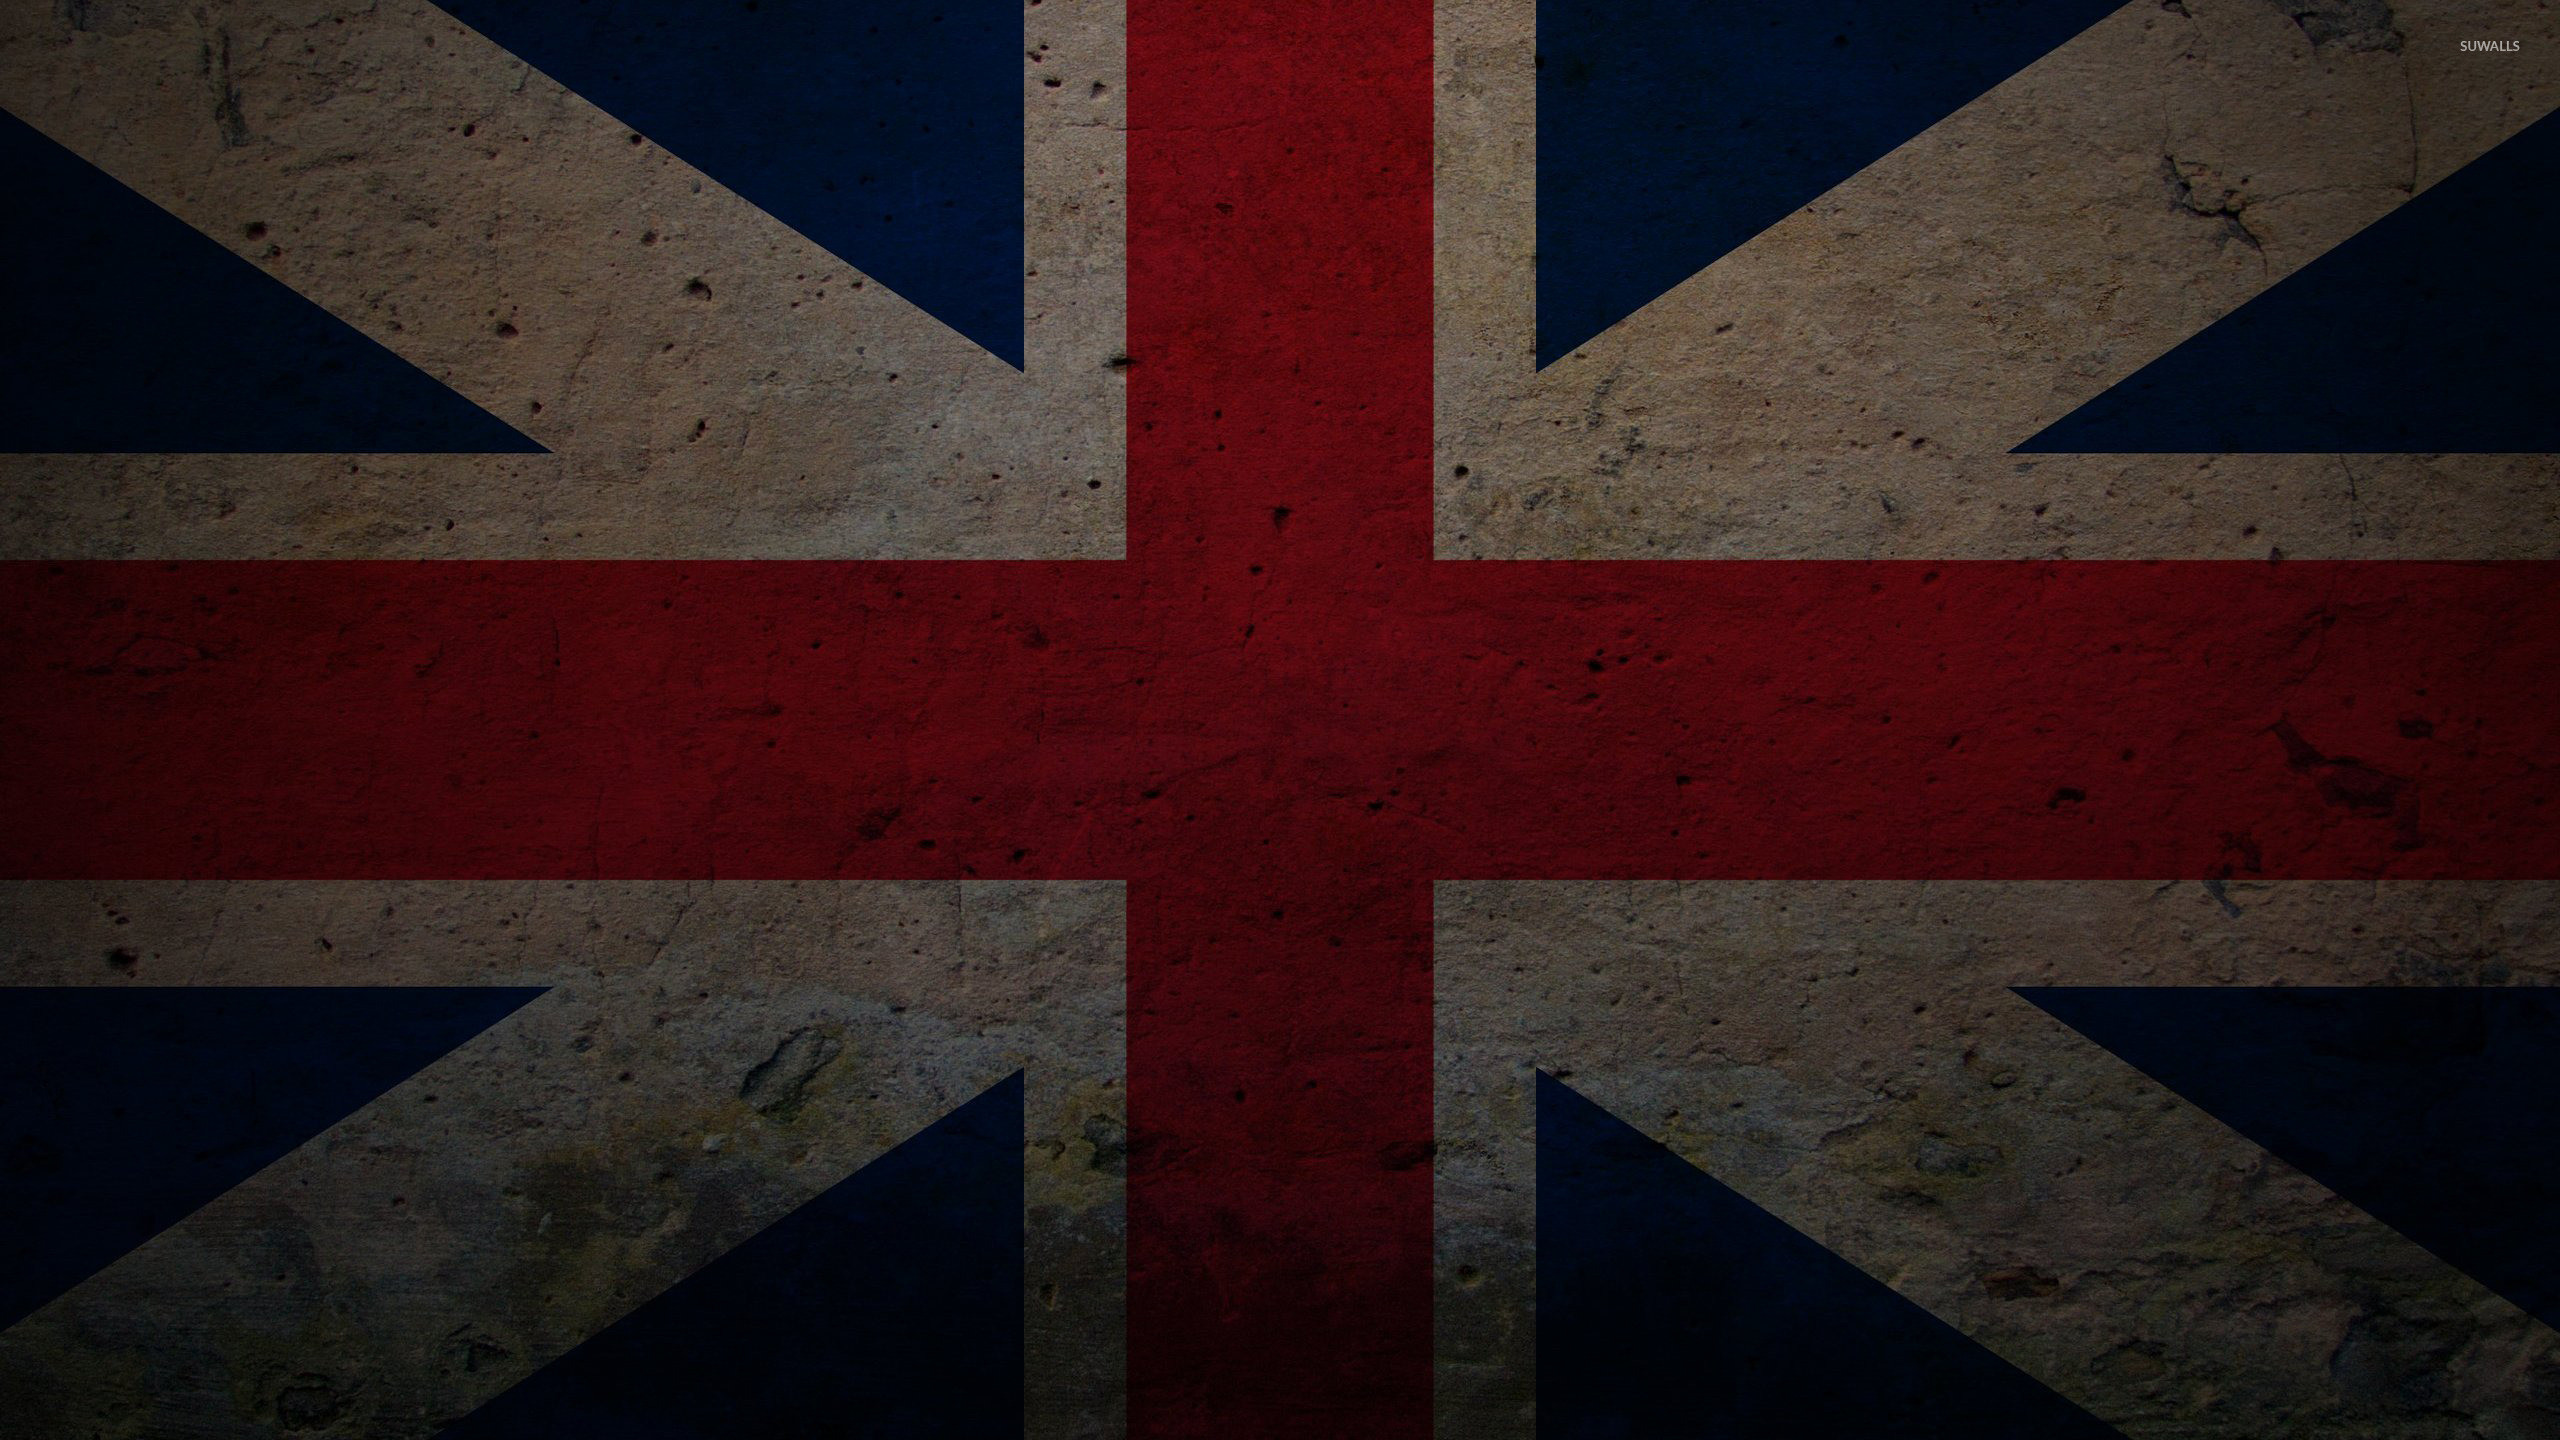 Free Union Jack HD Wallpapers mobile   HD Wallpapers   Pinterest   Union  jack, Hd wallpaper and Wallpaper